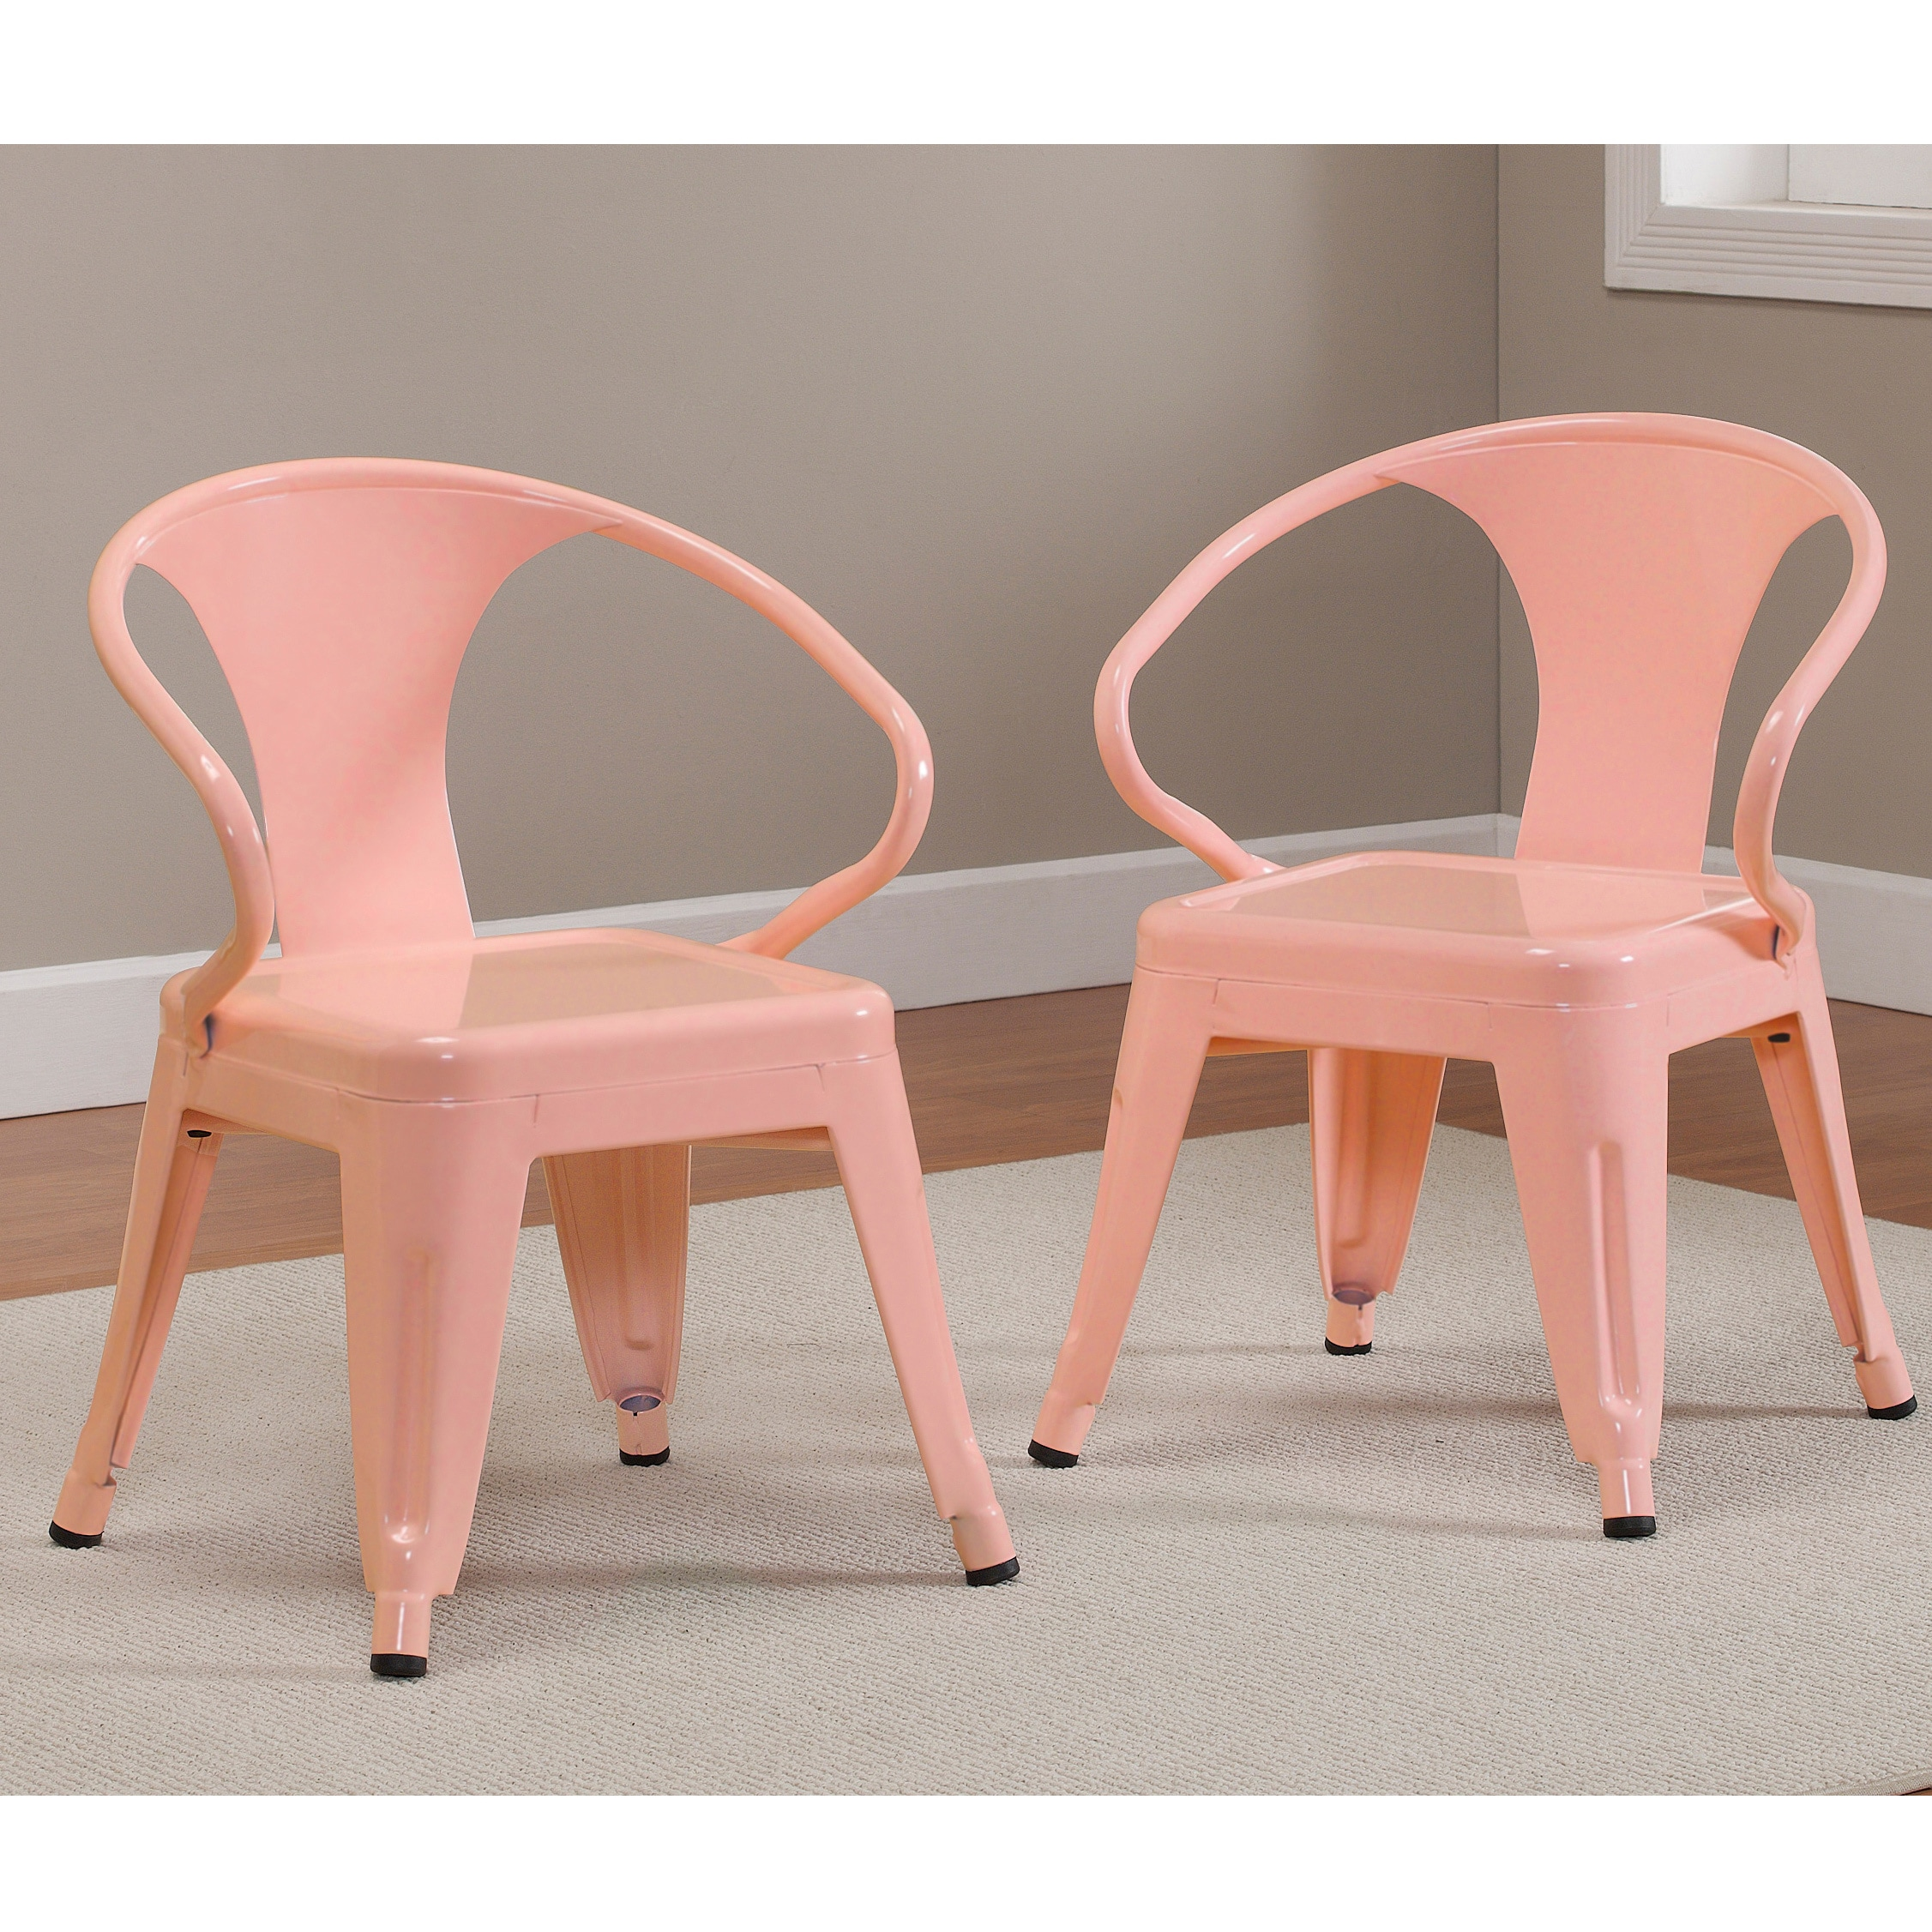 Brand new Kids Tabouret Stacking Chairs (Set of 2) - Free Shipping Today  FN84